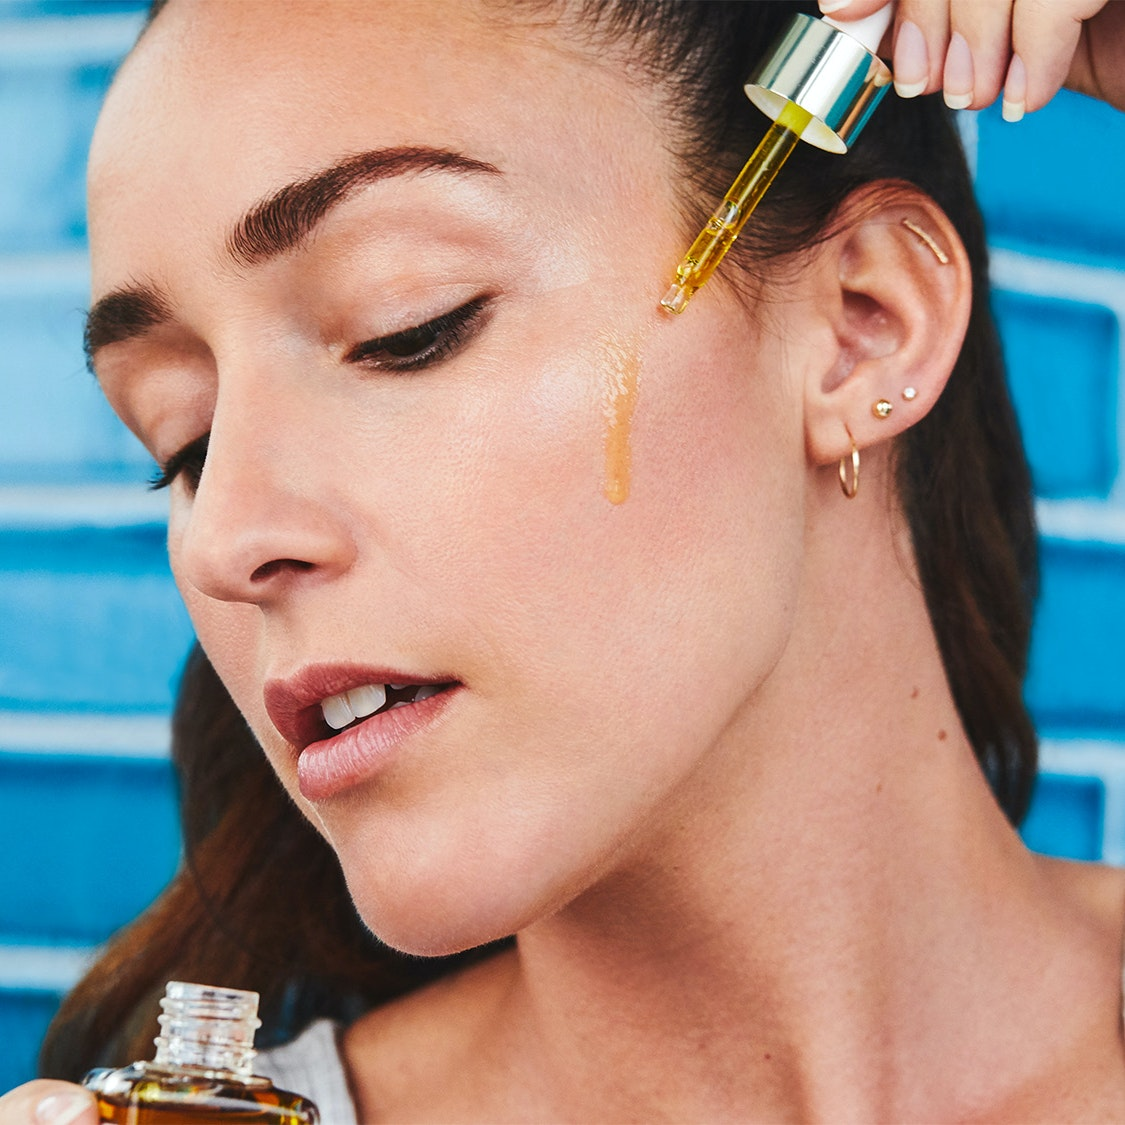 Booster Shots: 7 Seemingly Magical Serums That Will Supercharge Your Skincare Routine